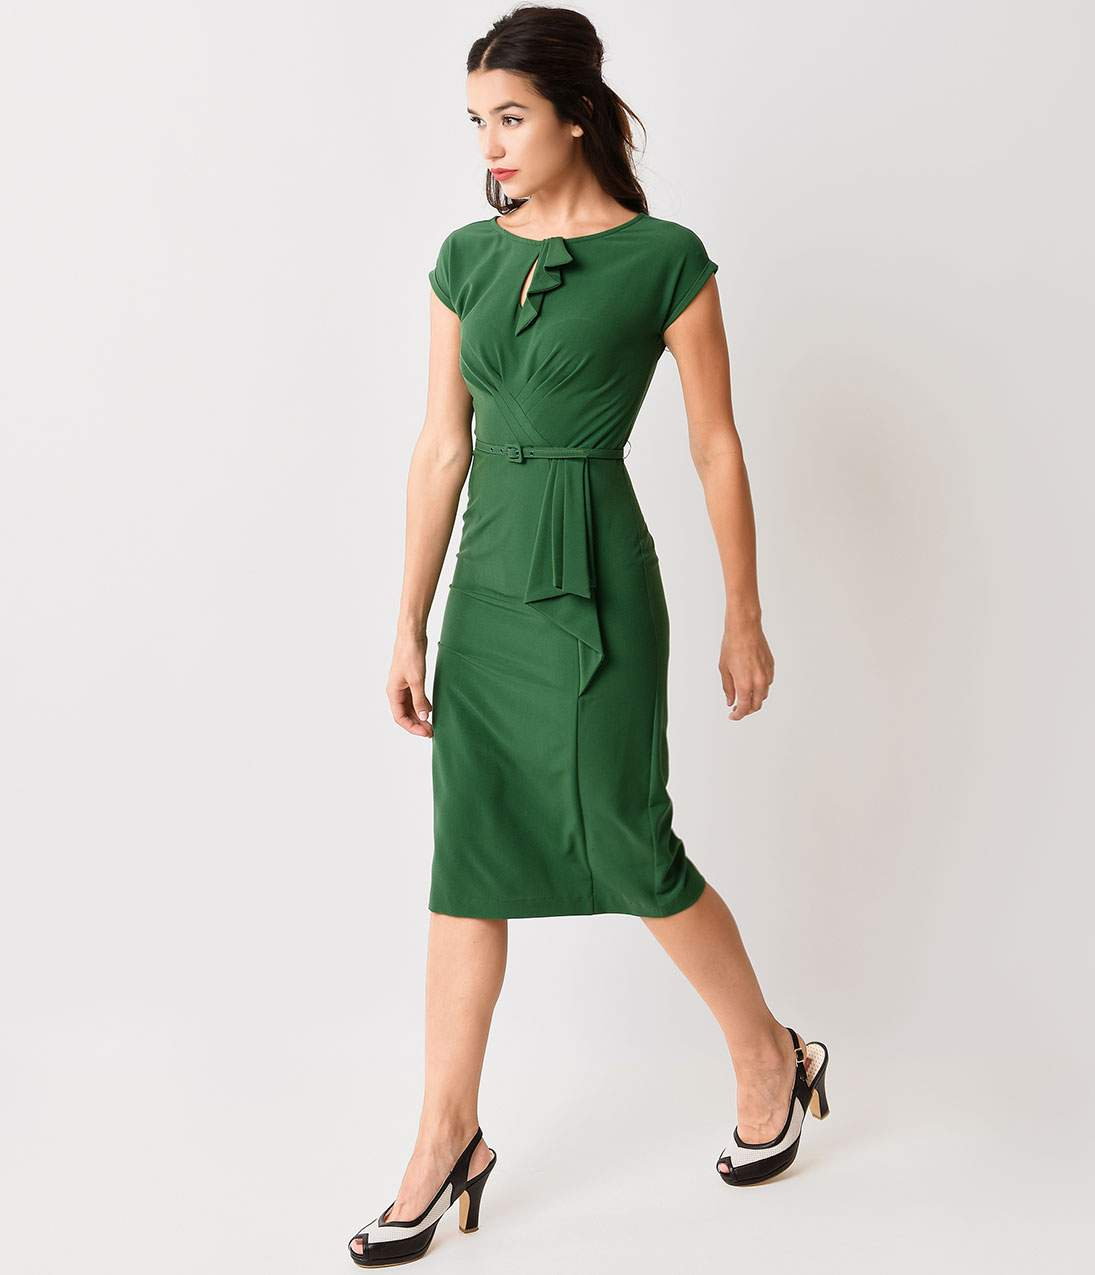 1940s Evening, Prom, Party, Cocktail Dresses & Ball Gowns Stop Staring 1940s Style Green Fitted Timeless Wiggle Dress $172.00 AT vintagedancer.com